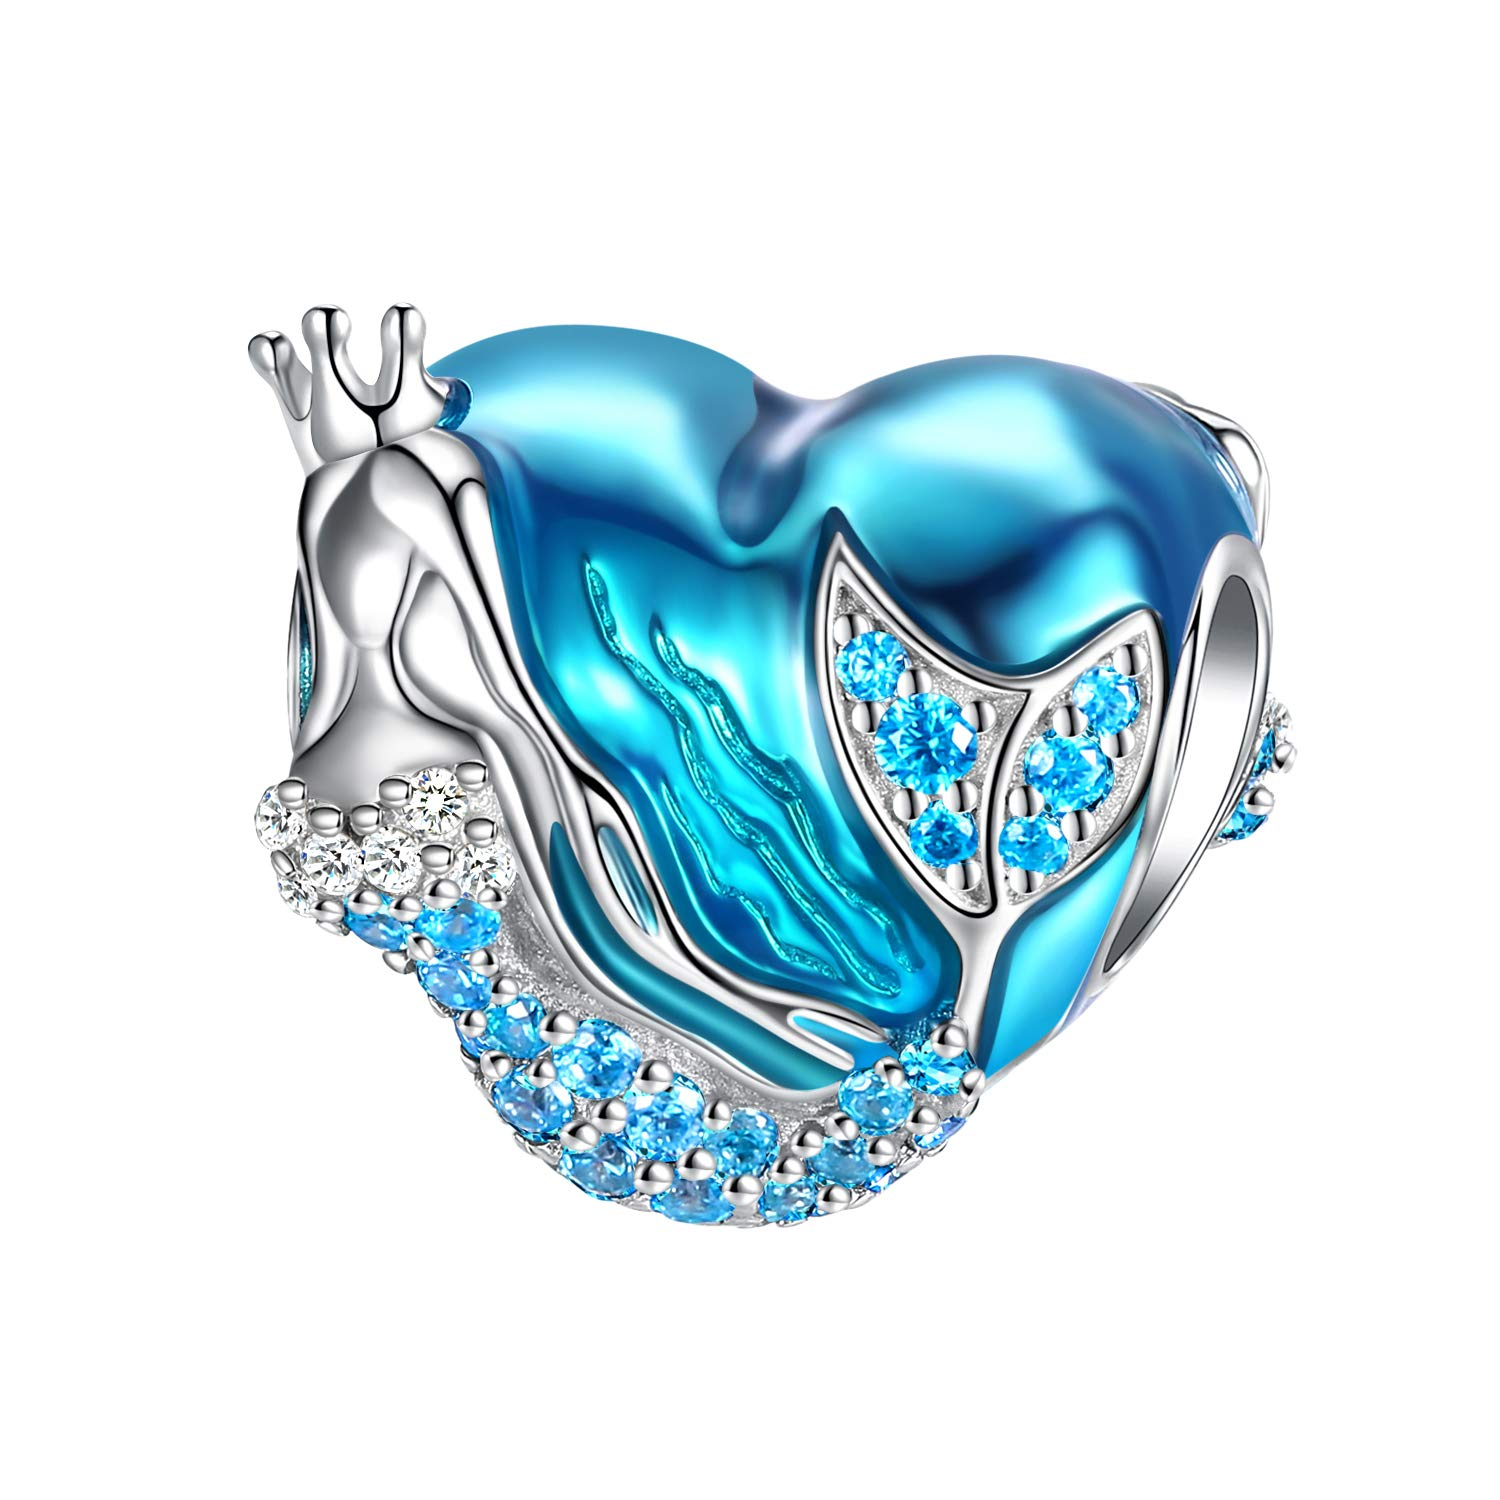 FOREVER QUEEN Mermaid Charms fit Pandora Charms Bracelet 925 Sterling Silver Charms Bead CZ Heart Shape Blue Enamel Bead Ocean Sea Charm for Snake Bracelets Necklace Women Girls Gift (Mermaid Charm) by FOREVER QUEEN